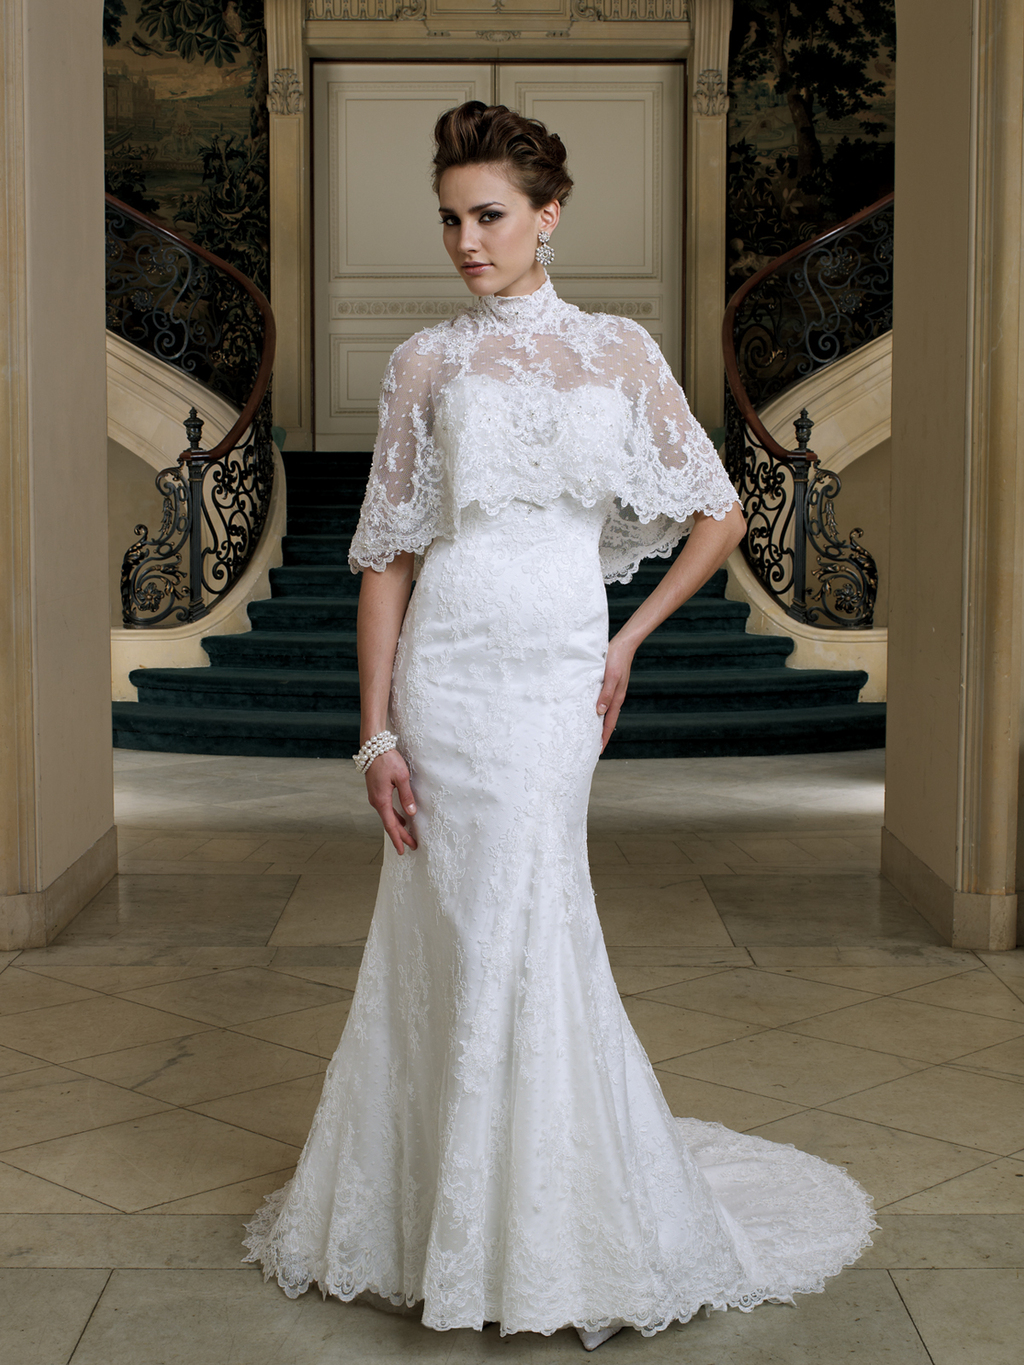 2012-wedding-dress-trends-lace-capes.full